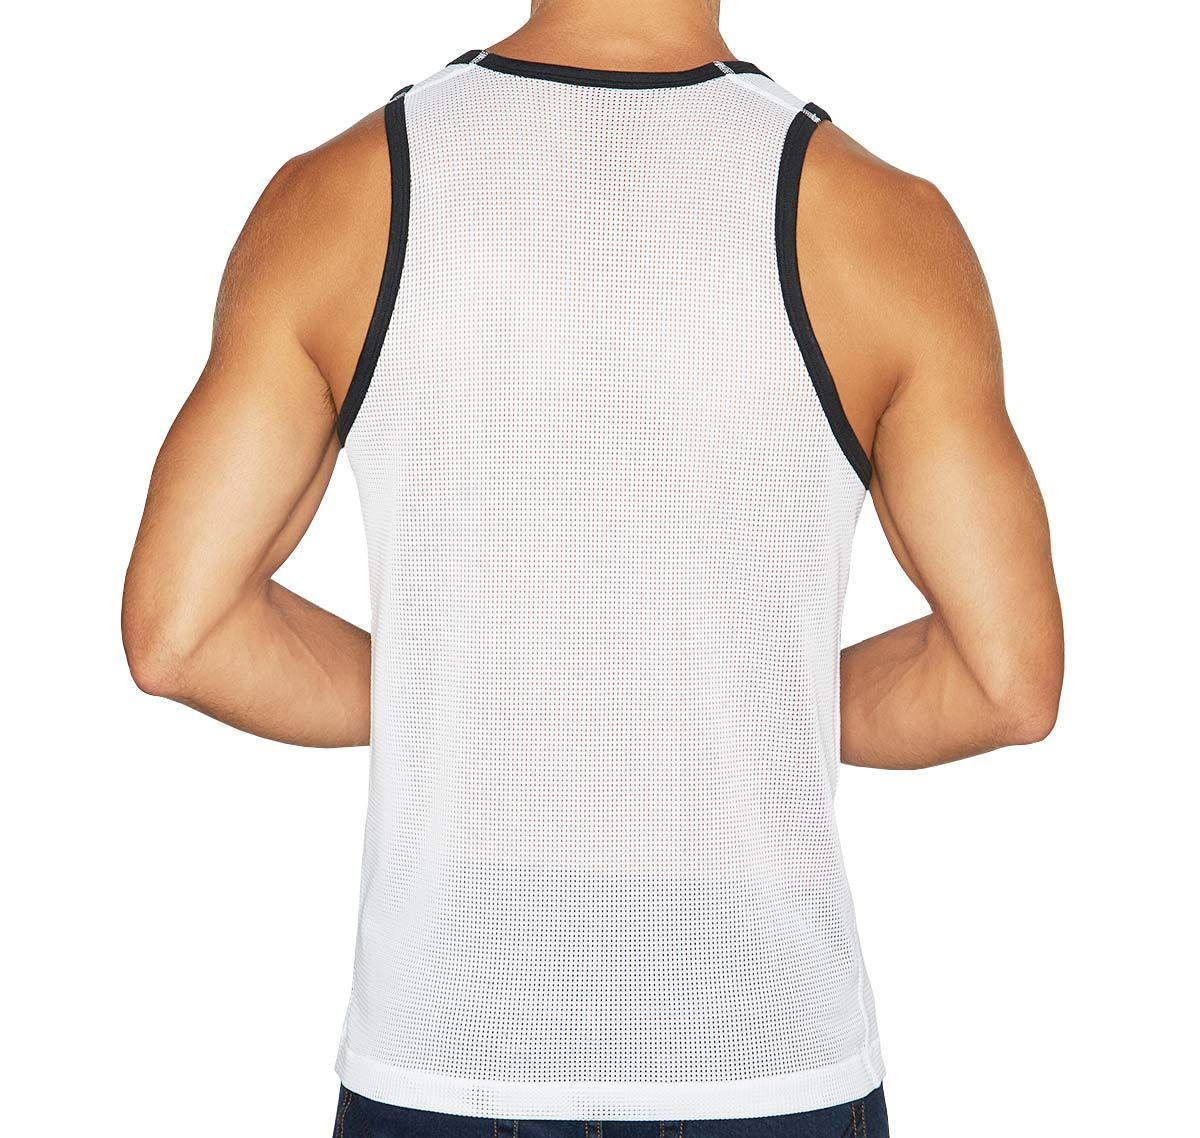 C-IN2 Tank Top SCRIMMAGE RELAXED TANK 6806-115, white